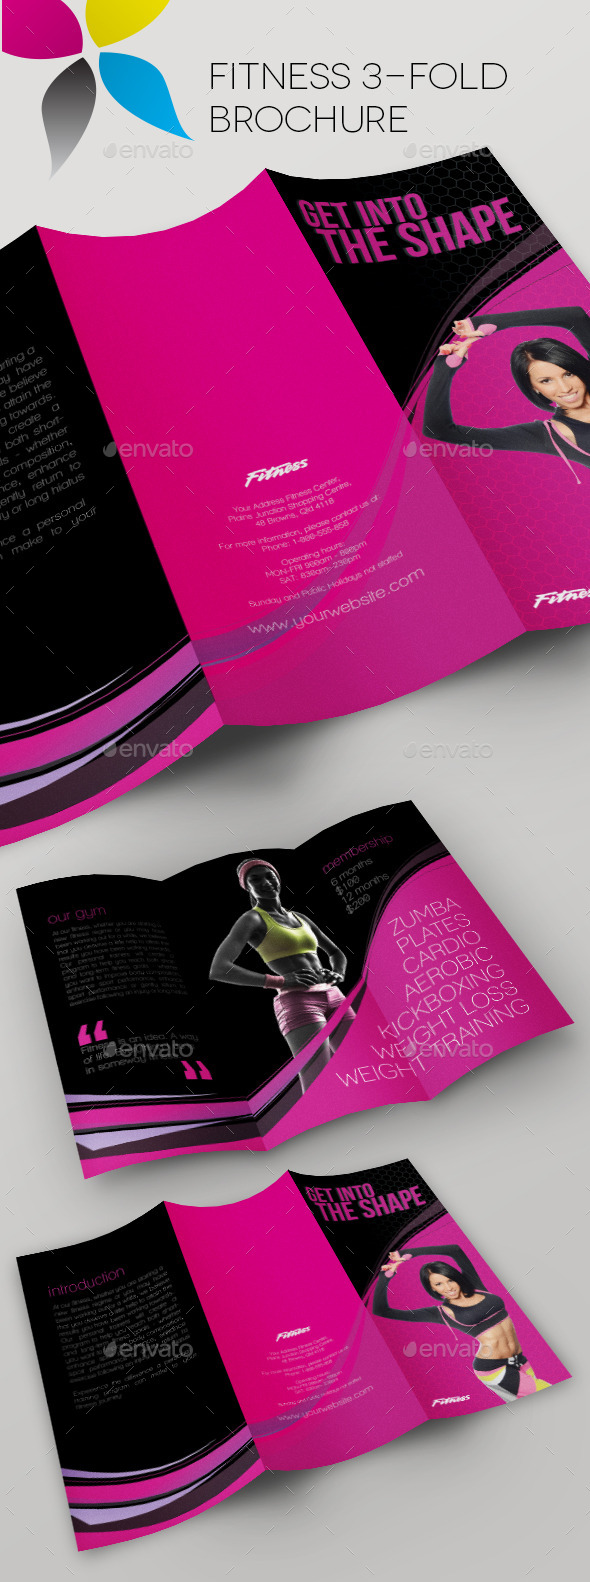 GraphicRiver Fitness 3-Fold Brochure 10916302